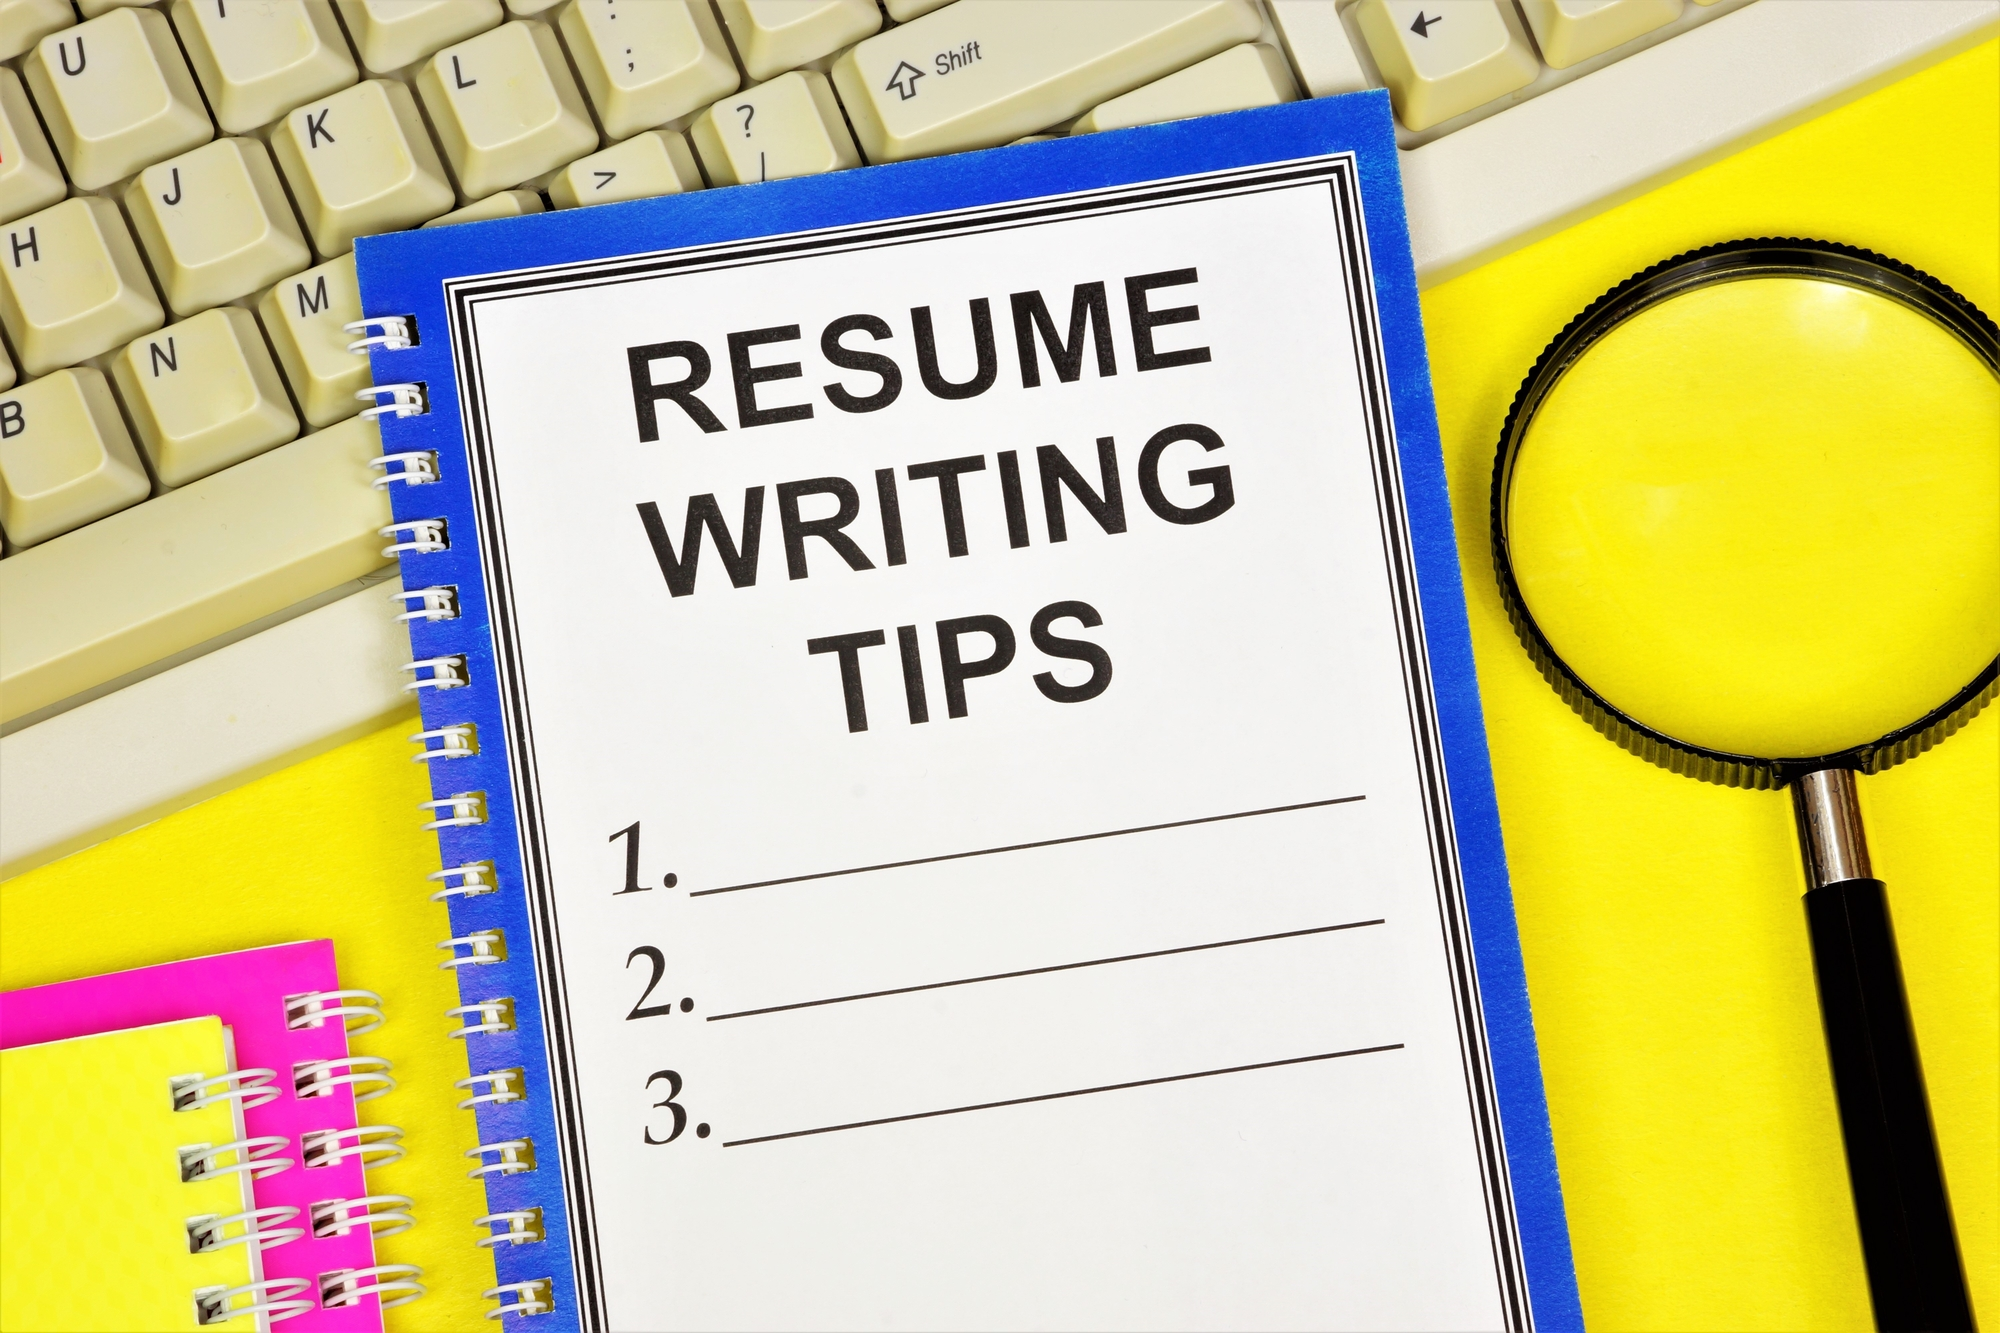 Note Pad Over Computer Keypad With Pen For Writing Down Property Management Resume Tips